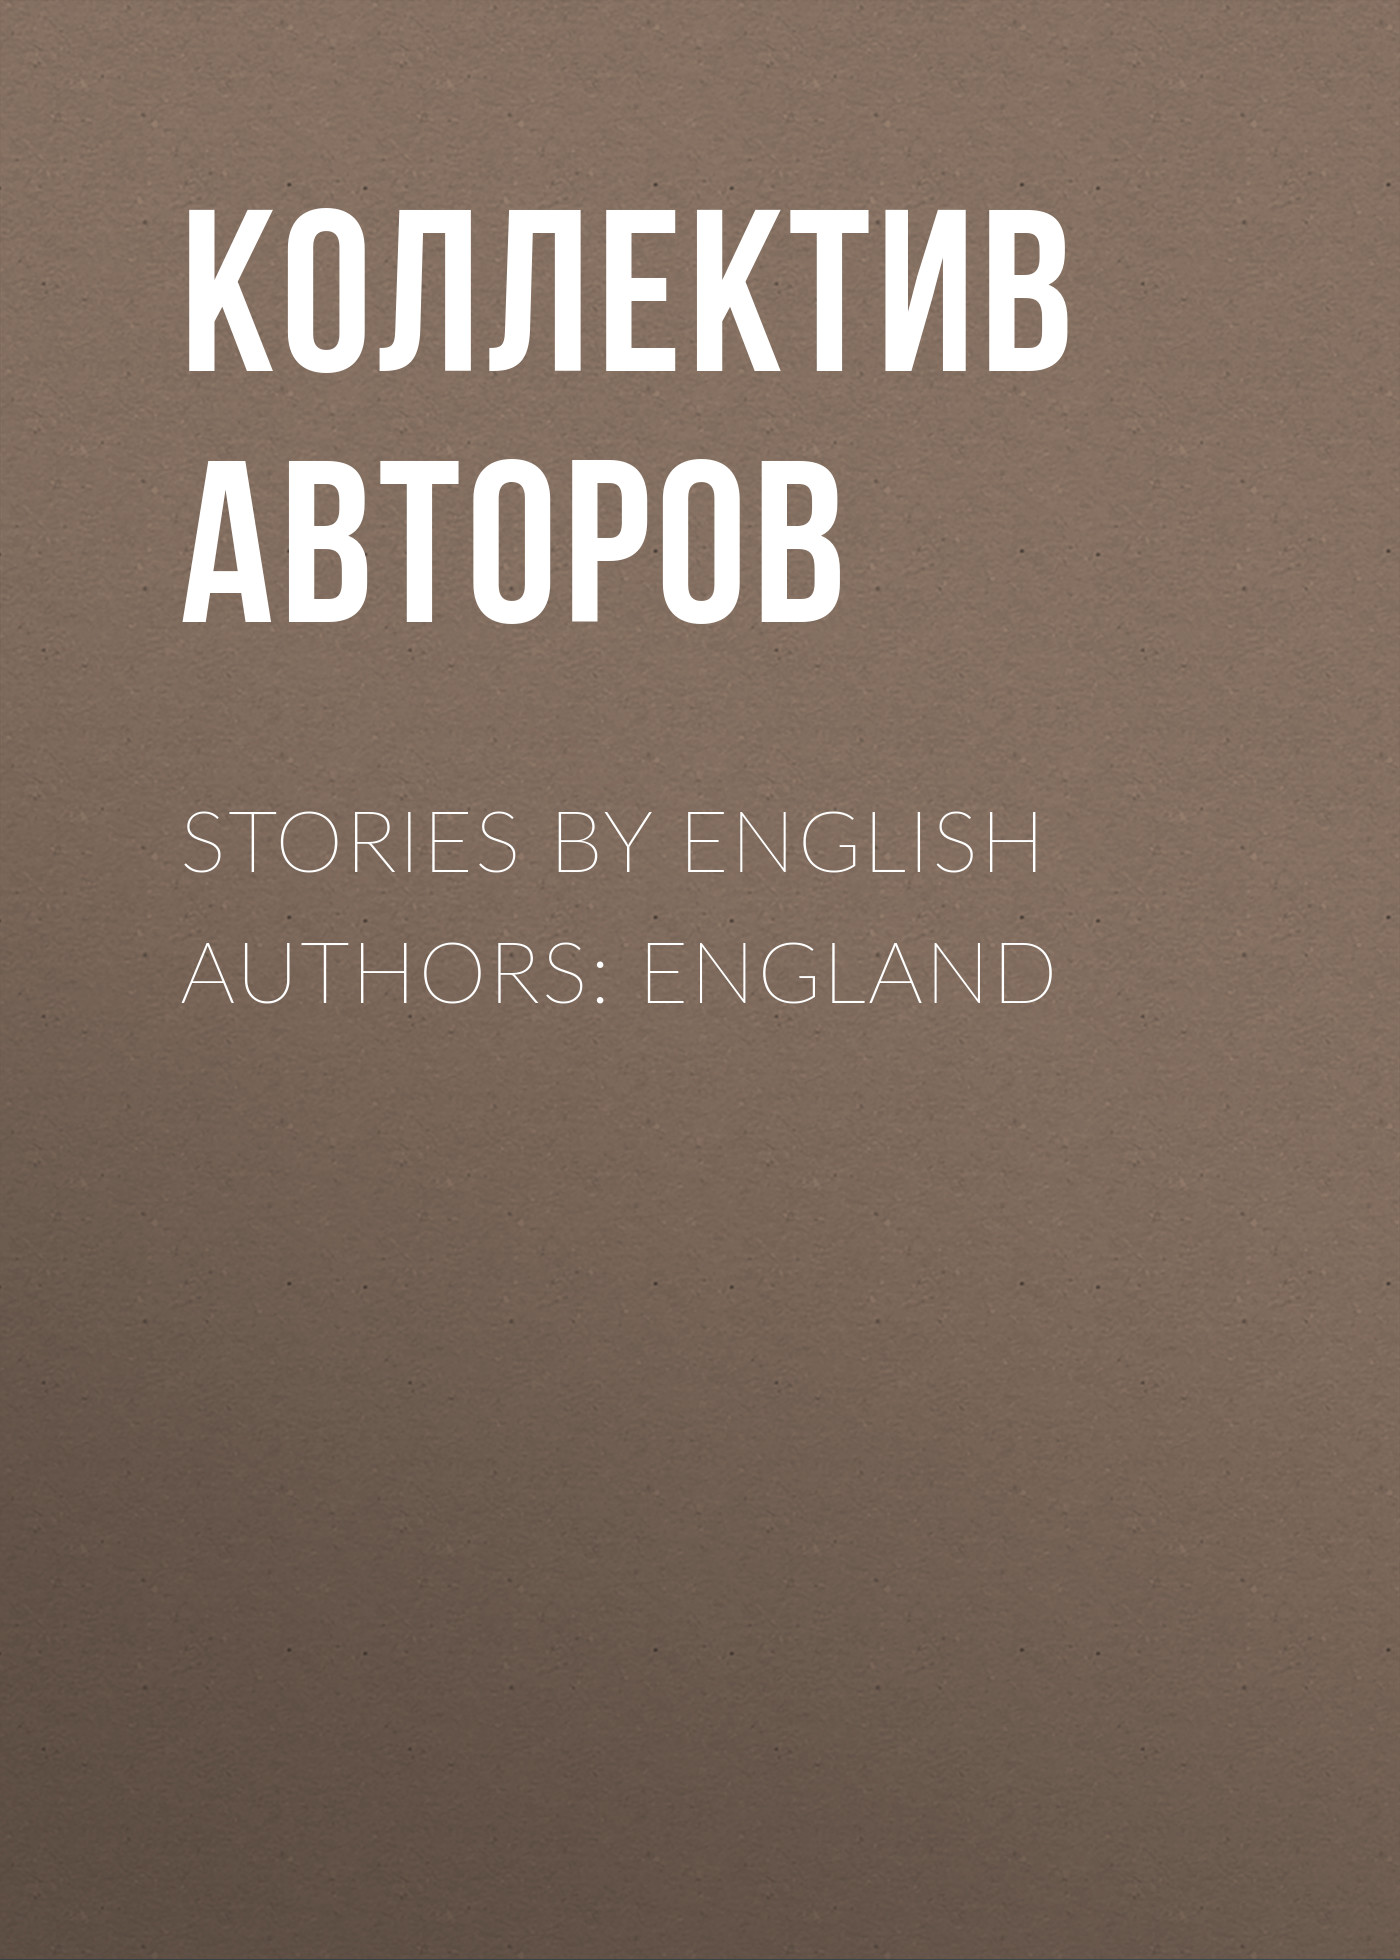 Коллектив авторов Stories by English Authors: England коллектив авторов stories by english authors germany